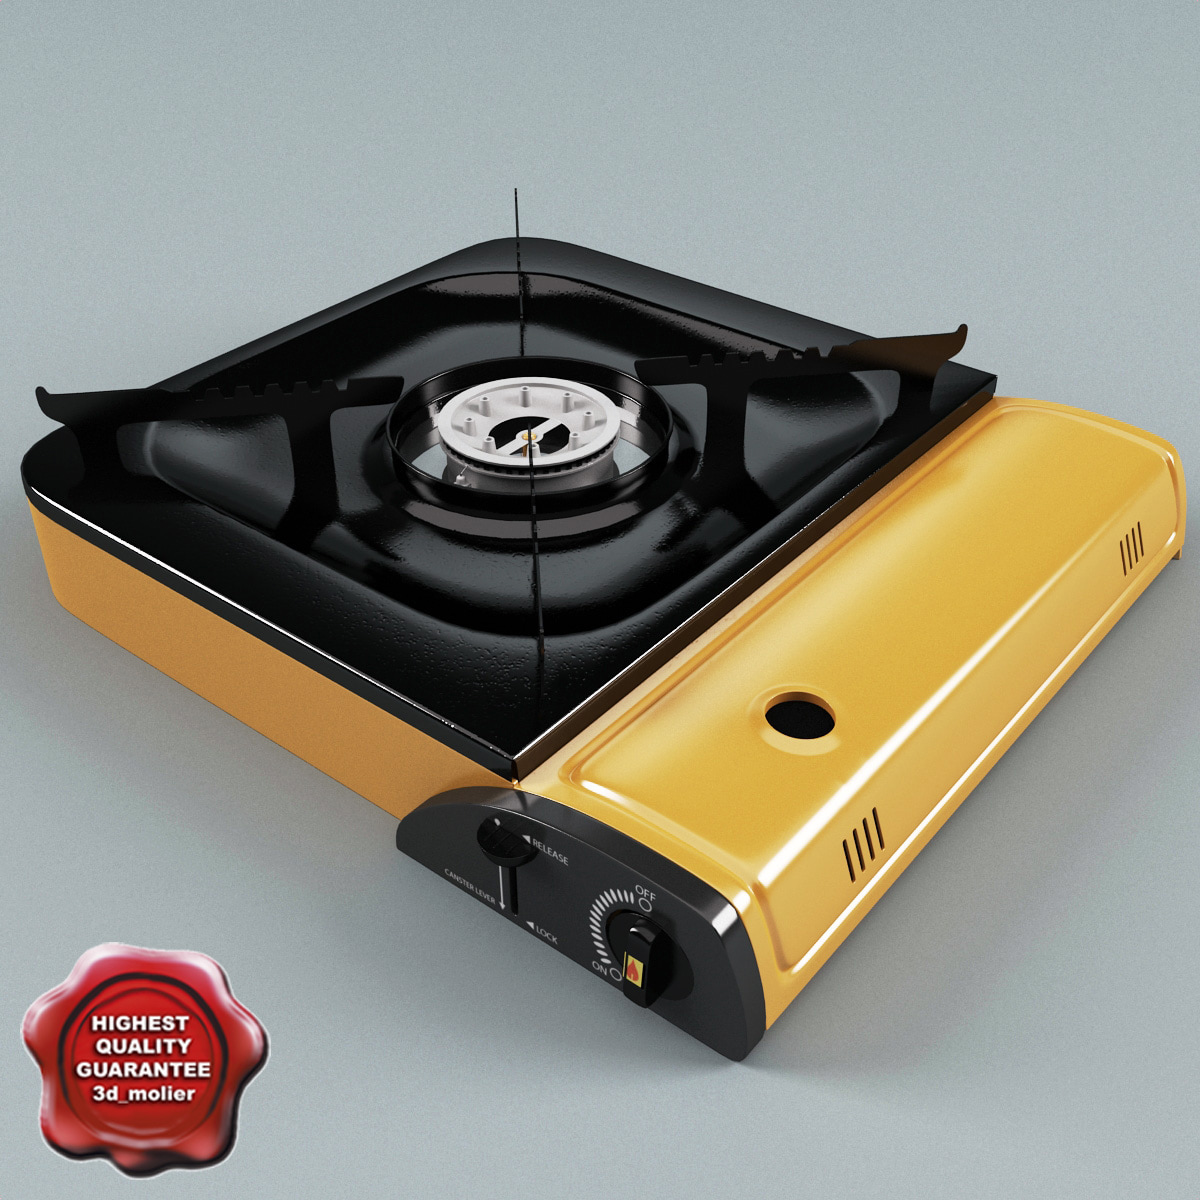 Portable_Gas_Stove_00.jpg